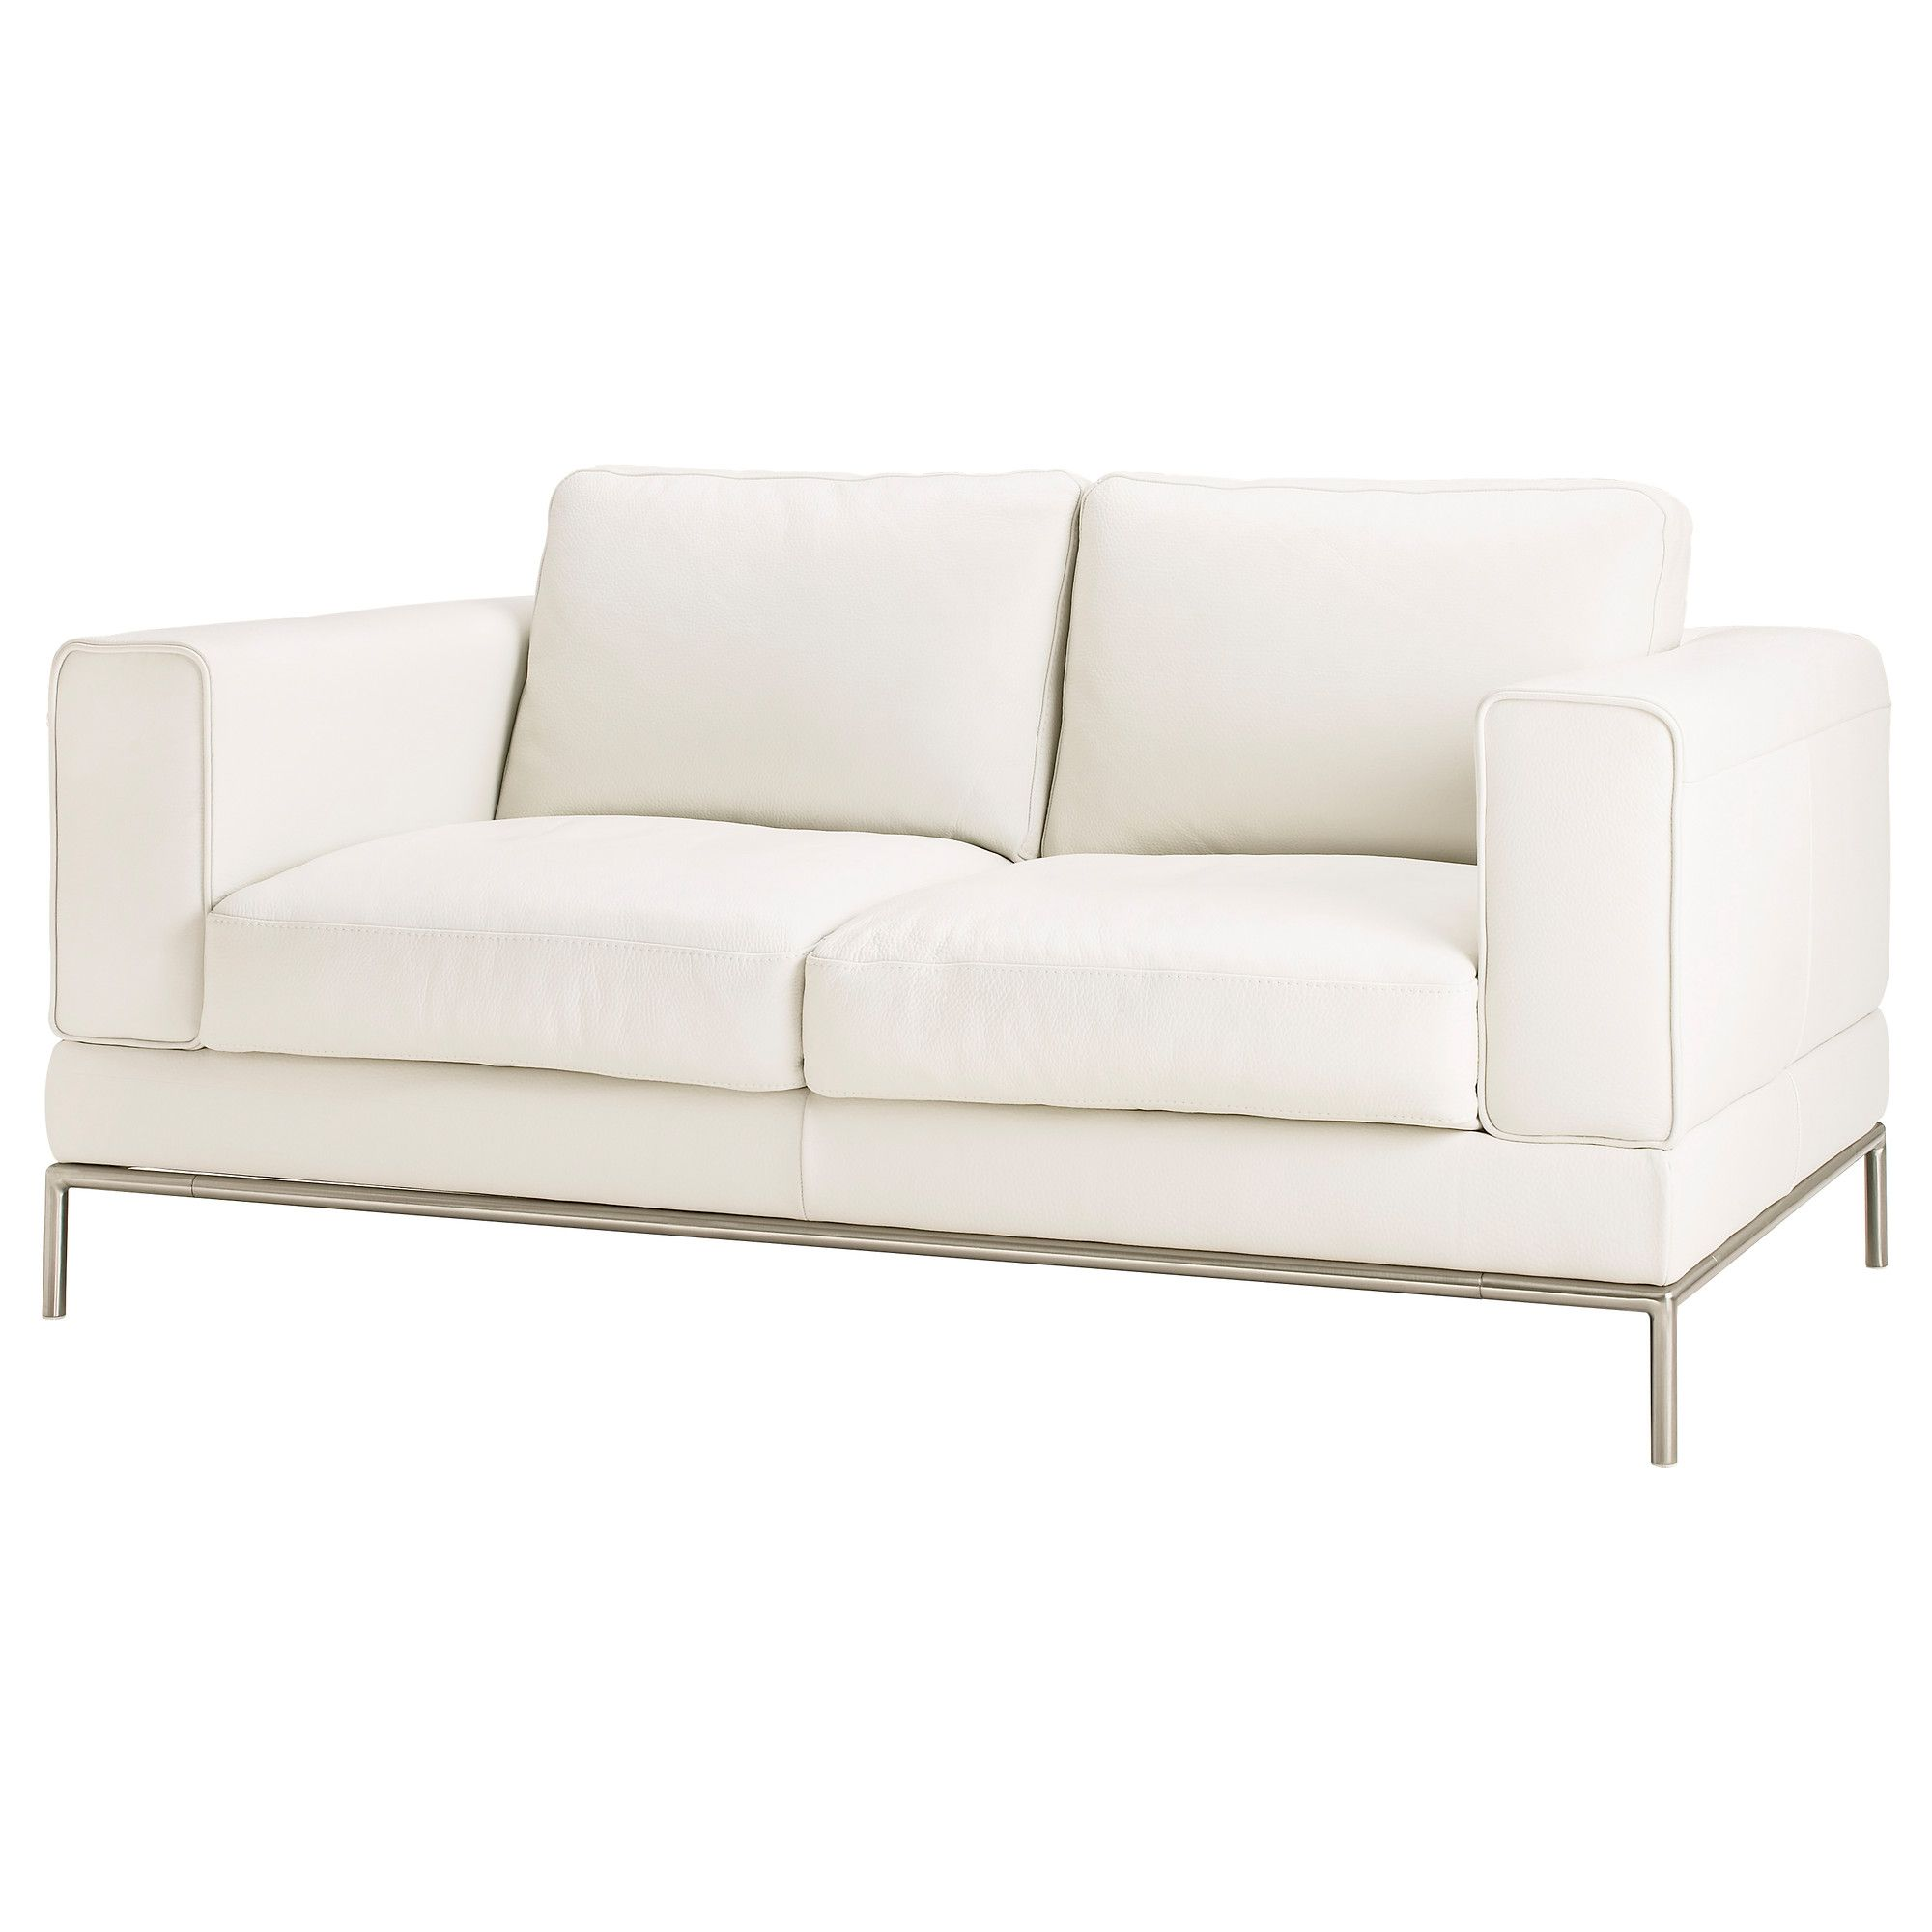 Ikea Australia Affordable Swedish Home Furniture White Leather Sofas White Leather Couch Ikea